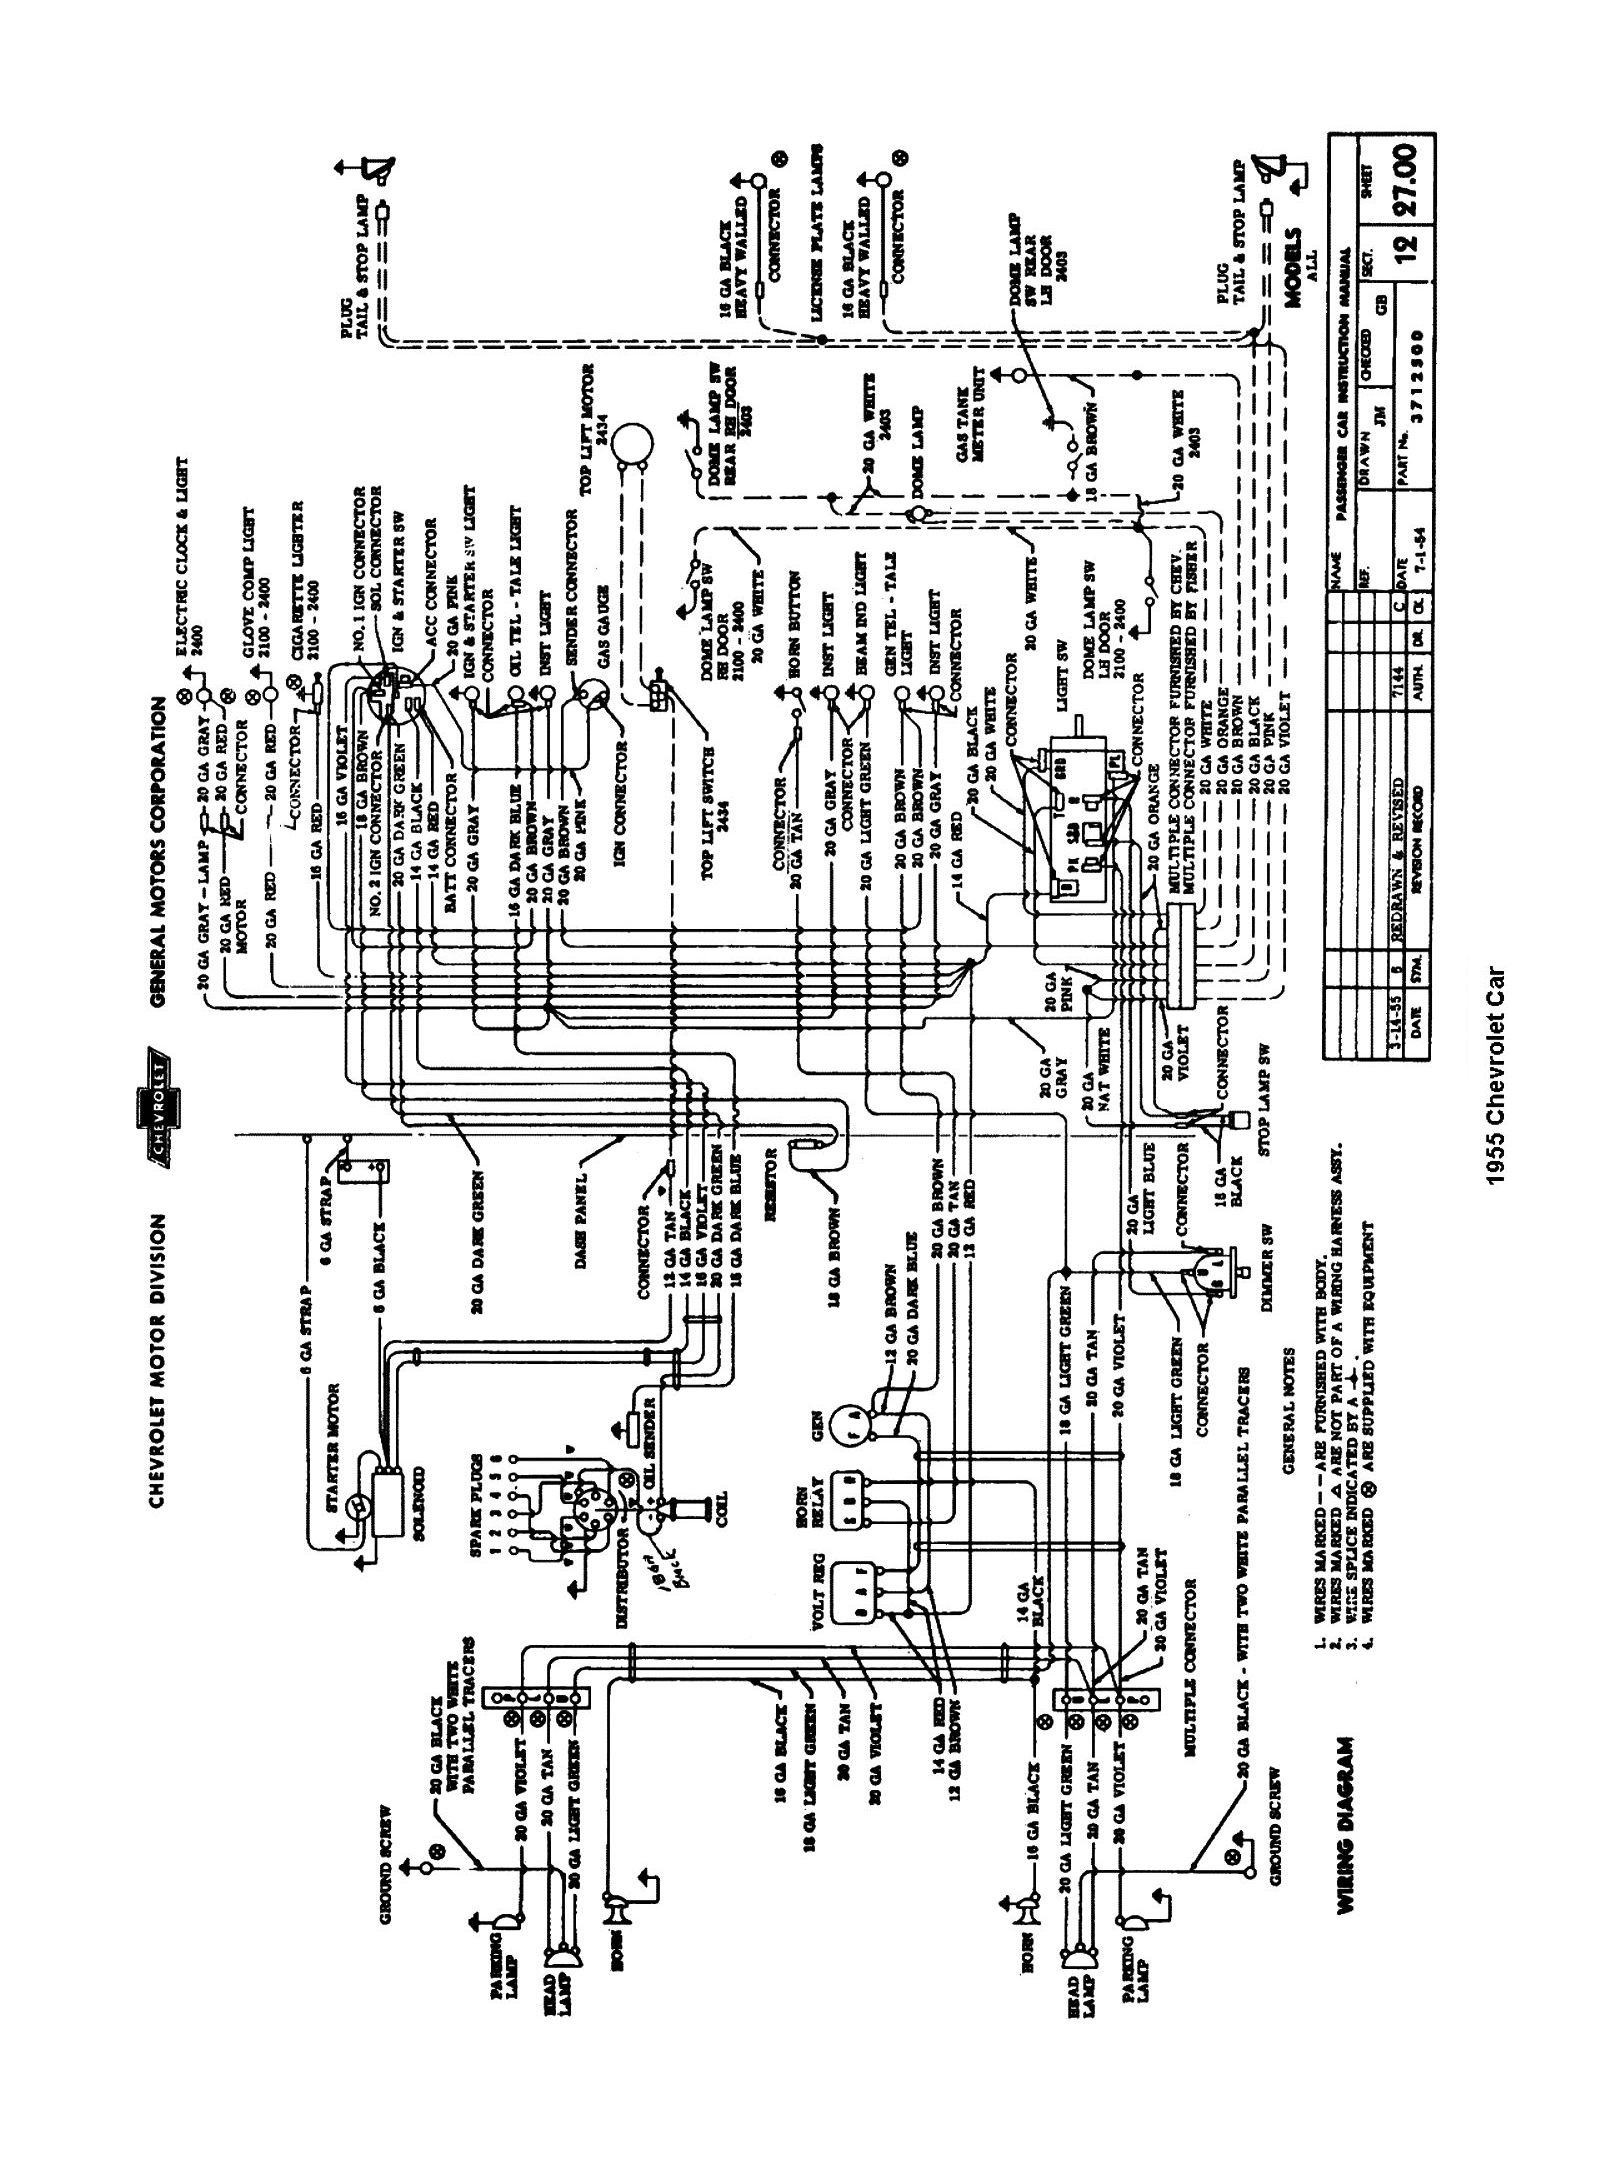 Wiring Diagram For Chevy Bel Air Powerking